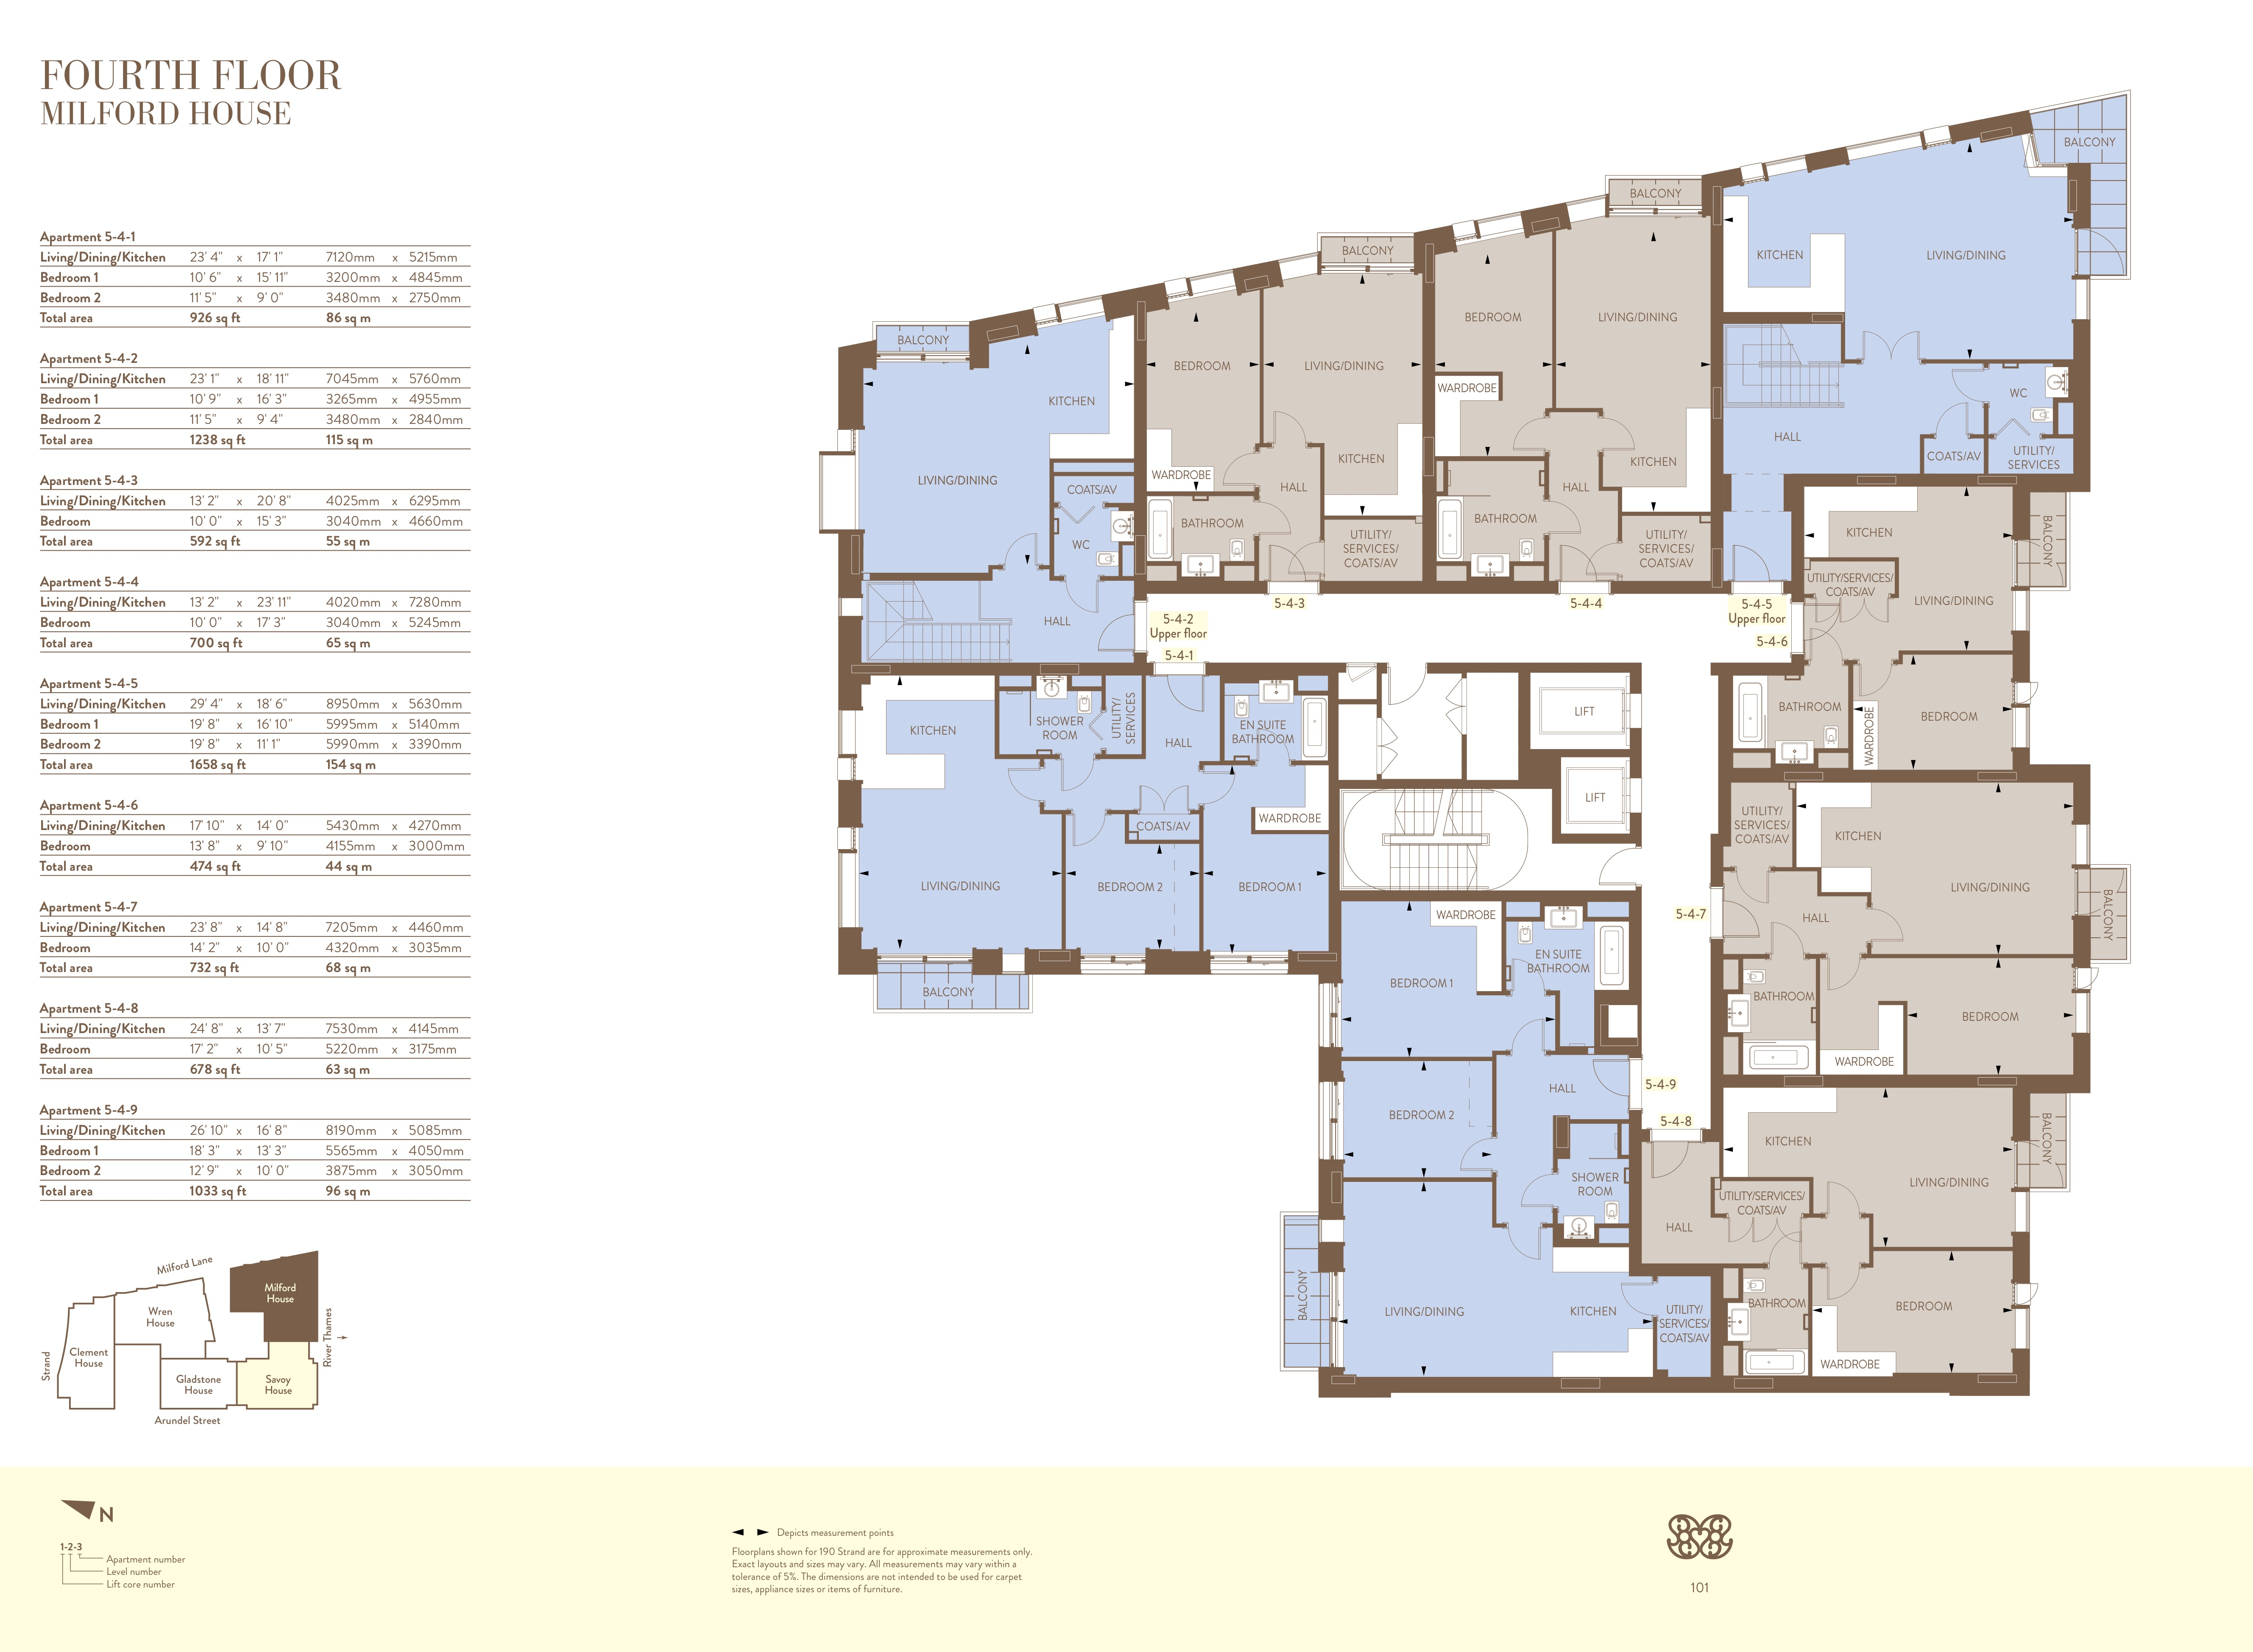 190 Strand Floor Plans - WC2 City of Westminster, London